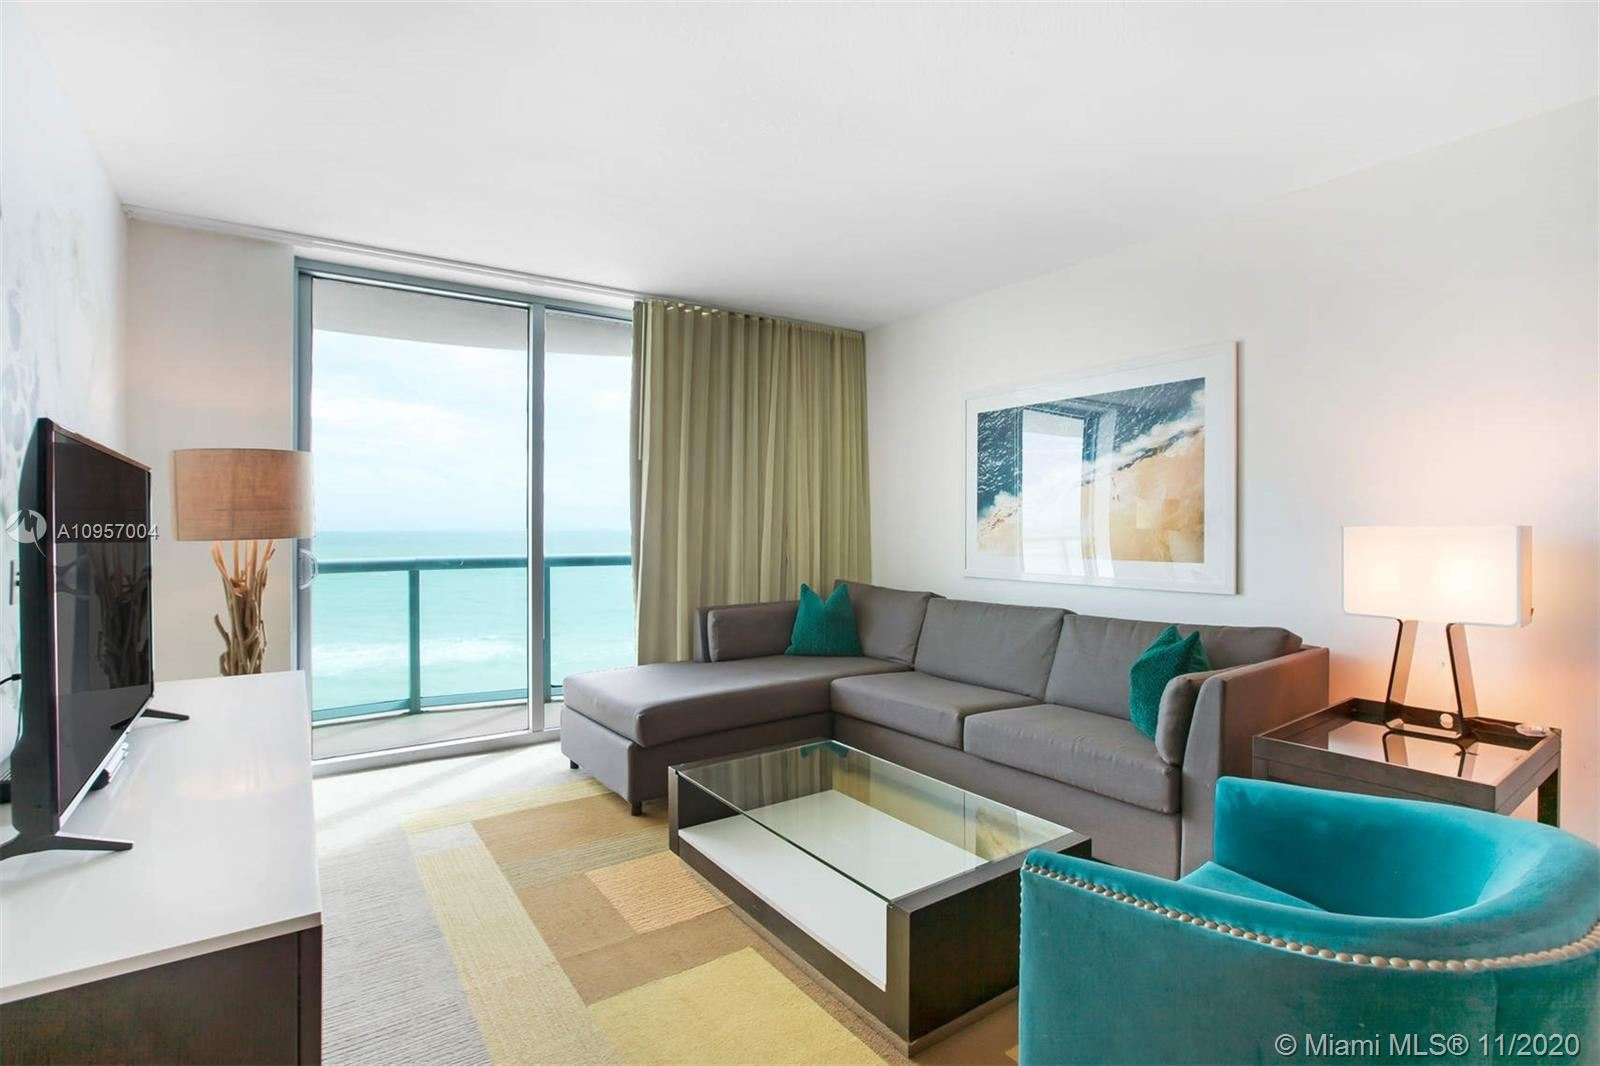 17315 Collins Ave #1101, Sunny Isles, FL 33160 - #: A10957004